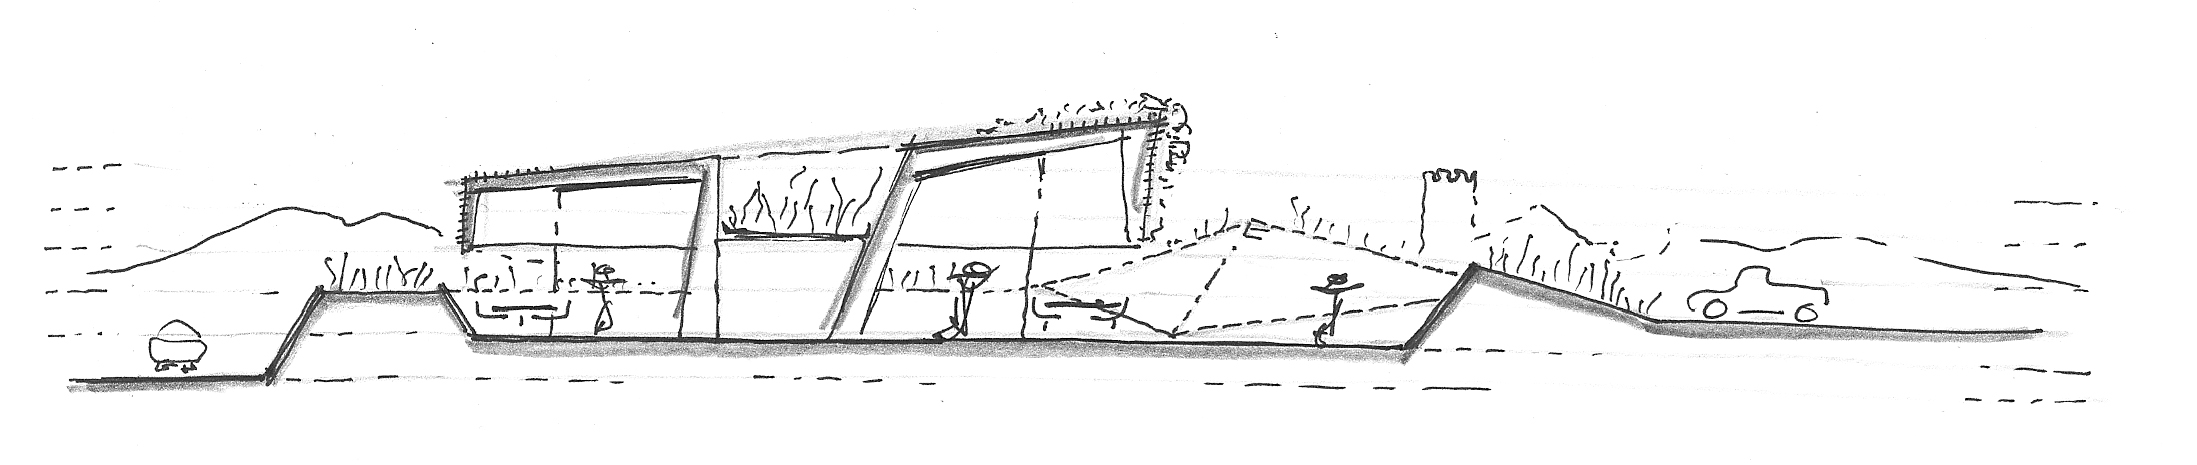 C1102_Sketch_section